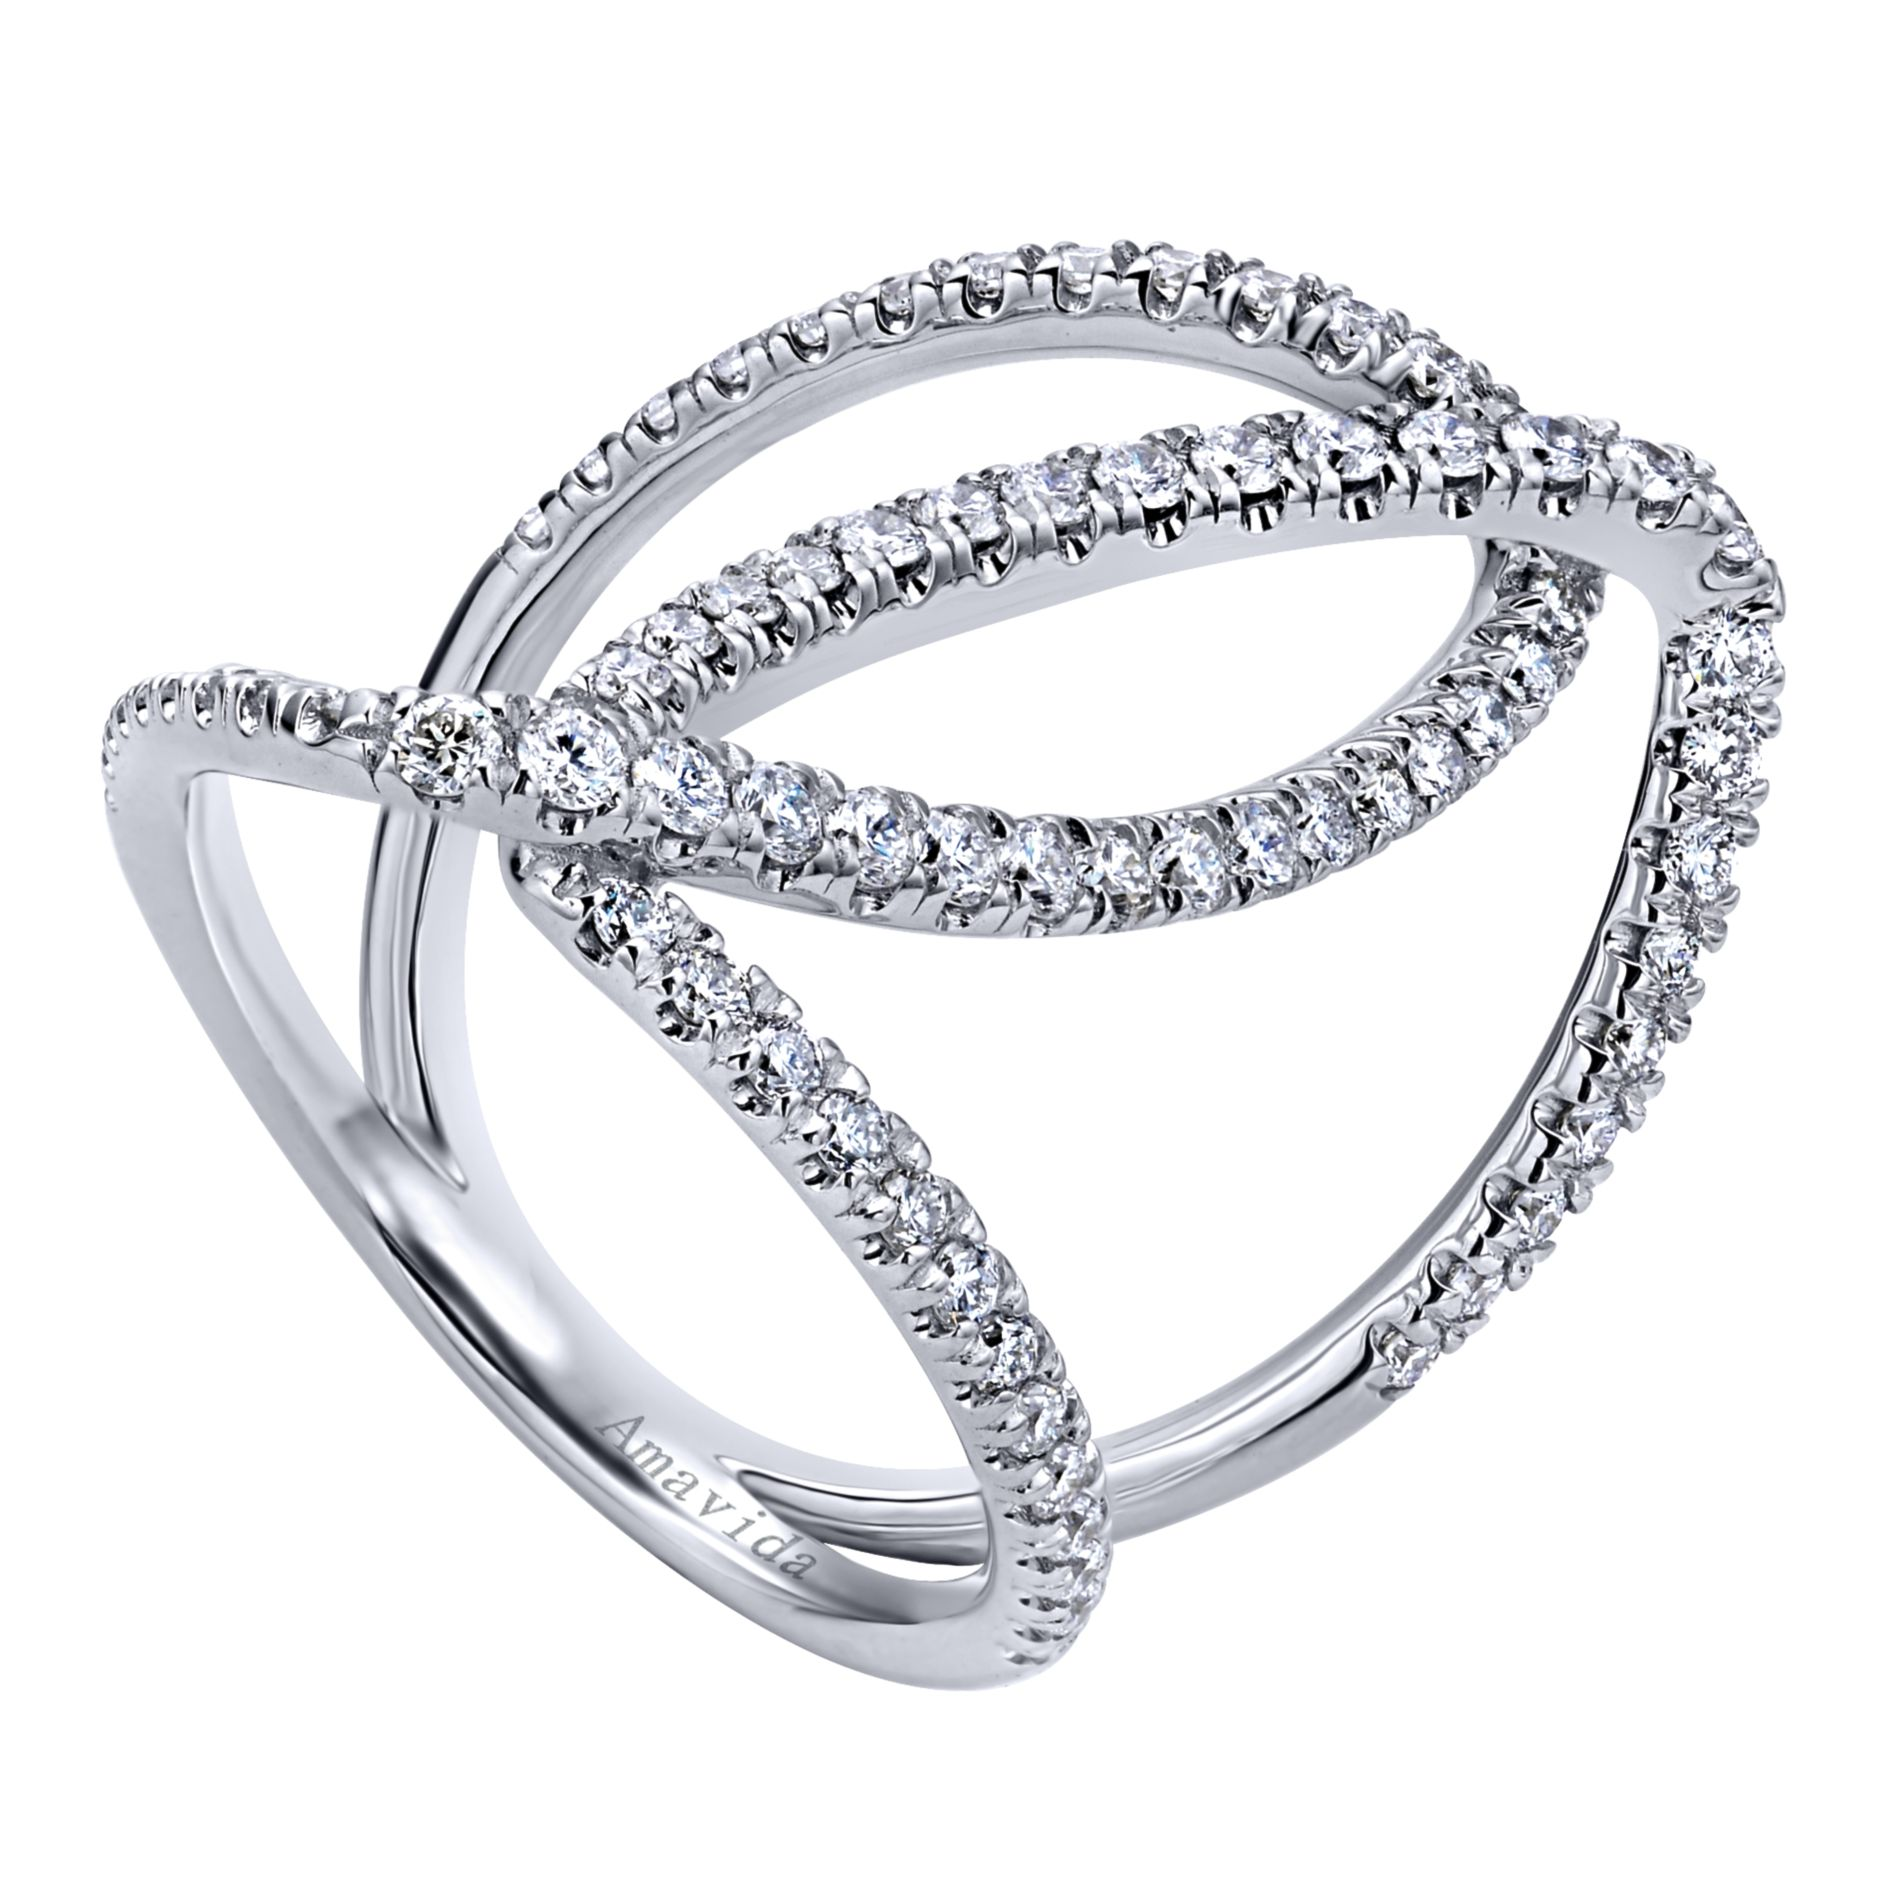 Rings - WHITE GOLD WIDE BAND DIAMOND LADIES RING - image #3